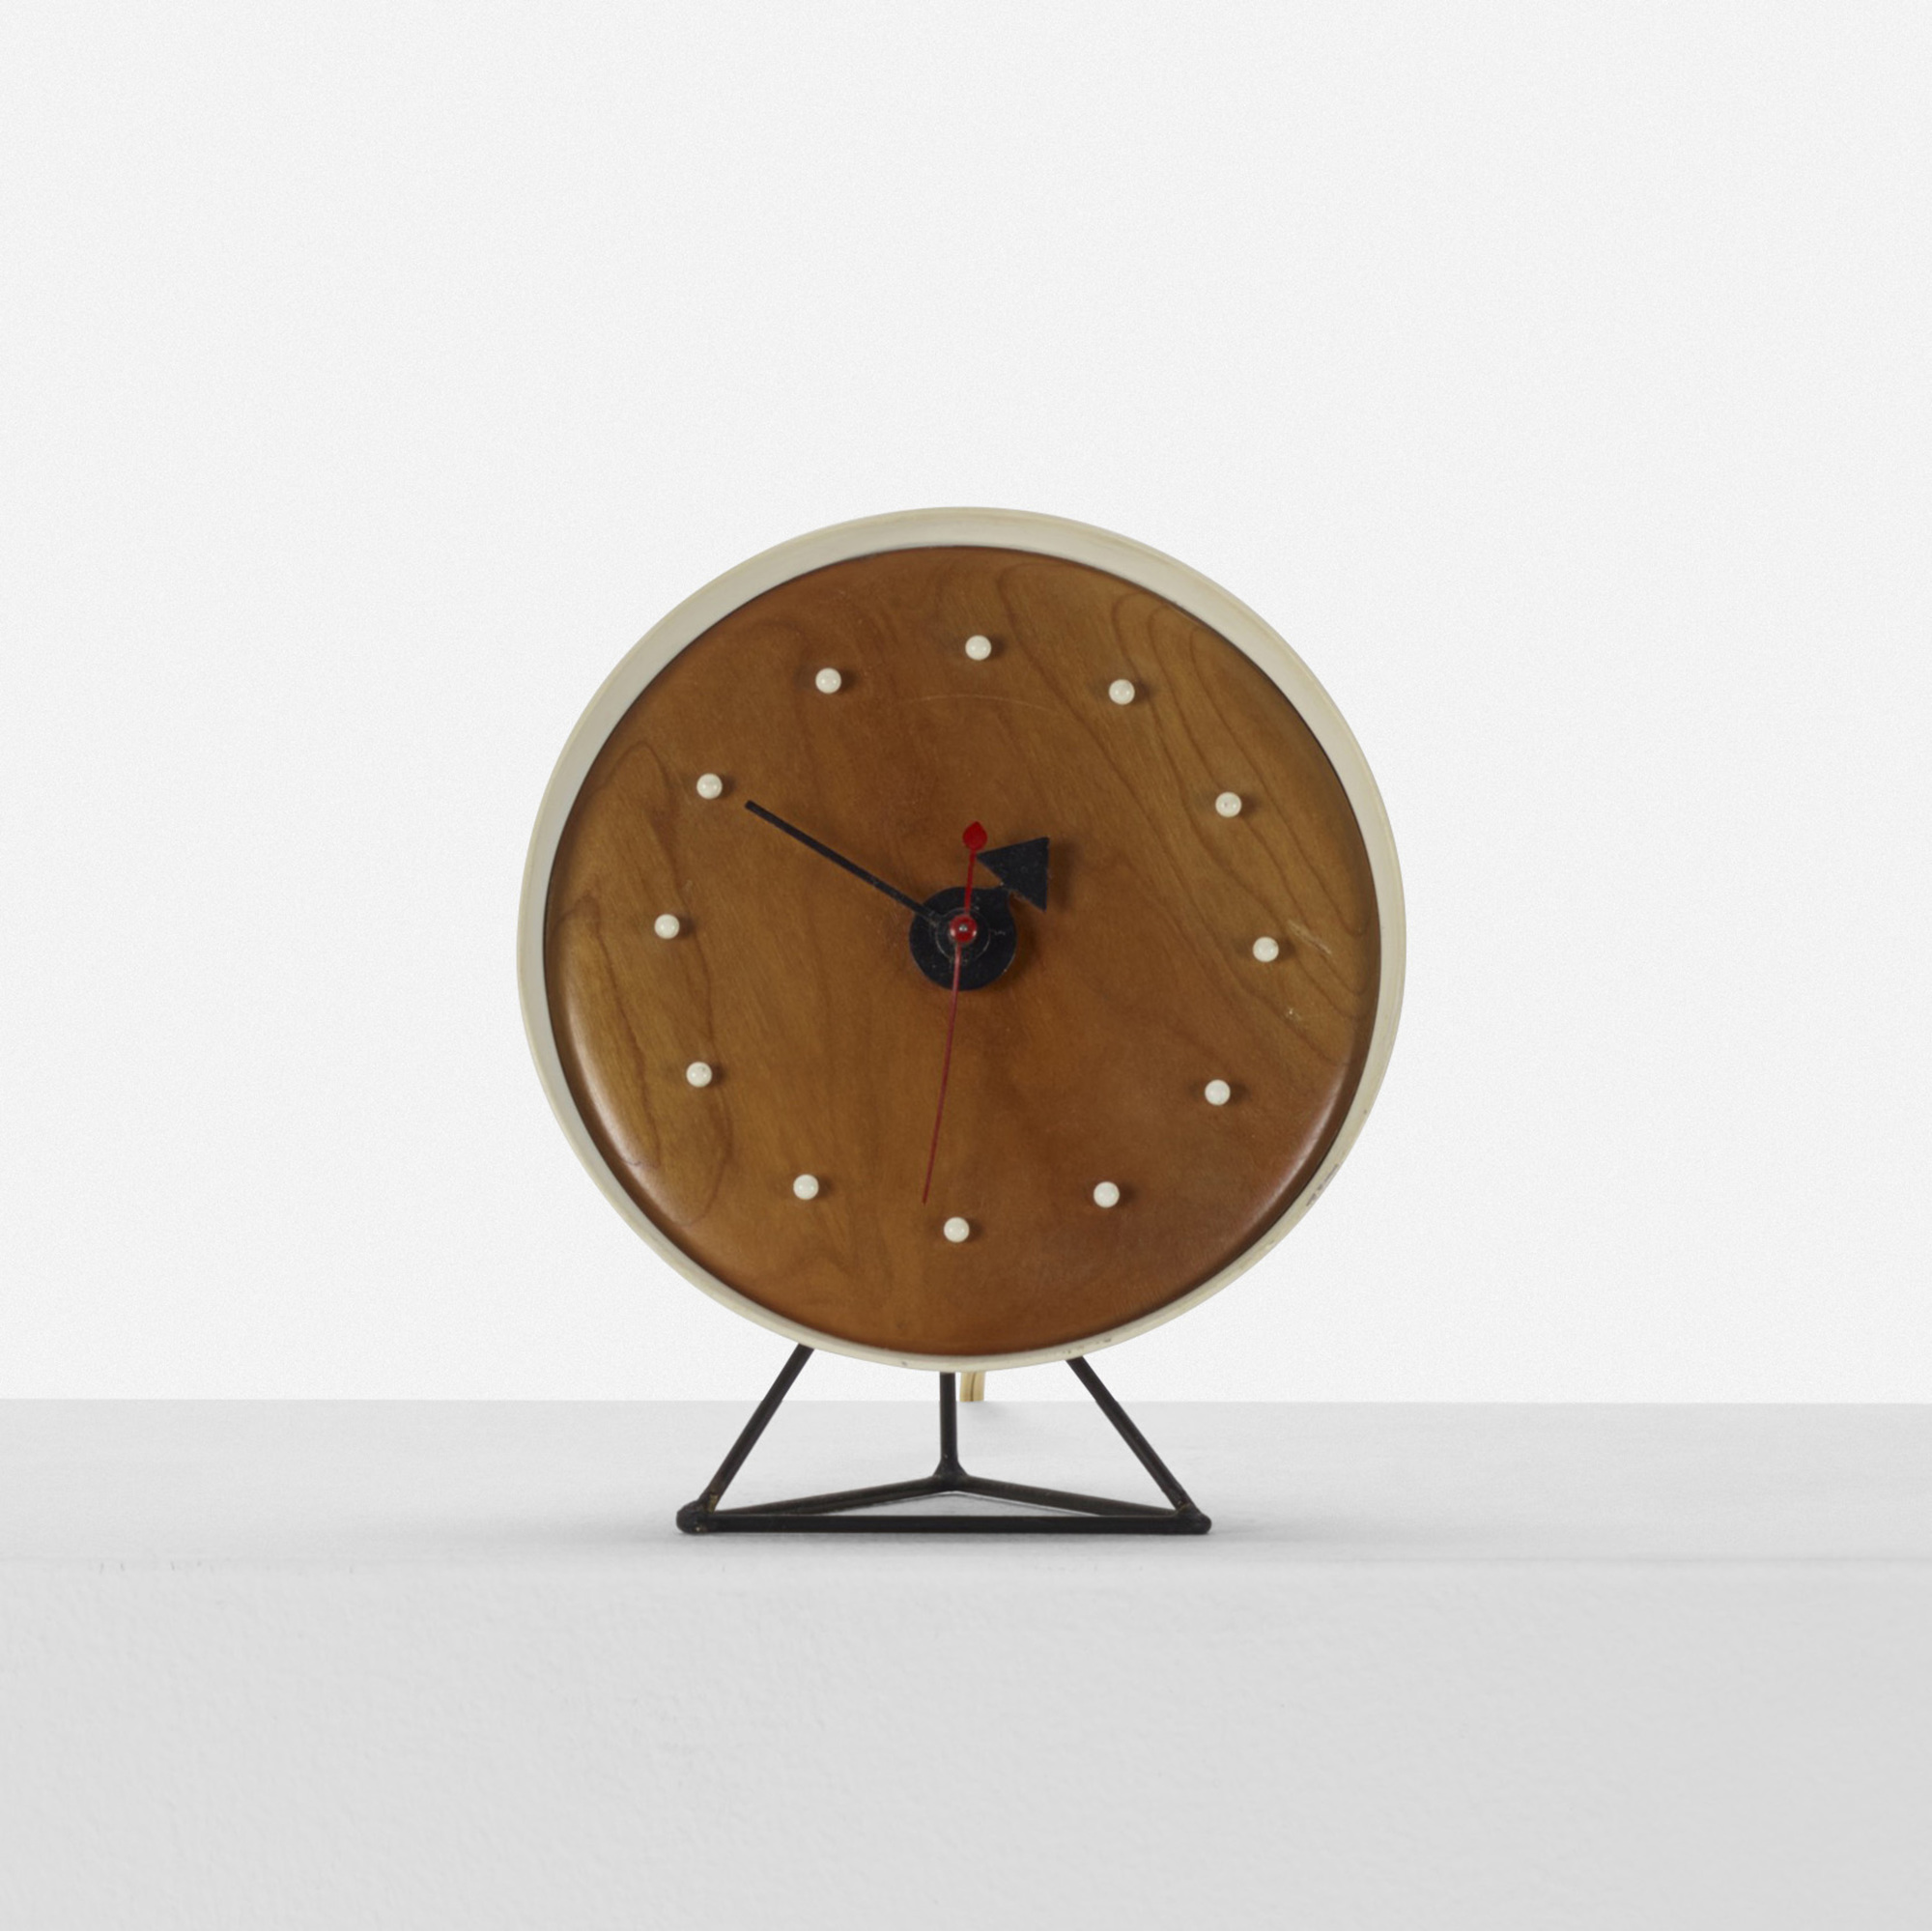 345: George Nelson & Associates / Cone table clock, model 2218A (2 of 3)